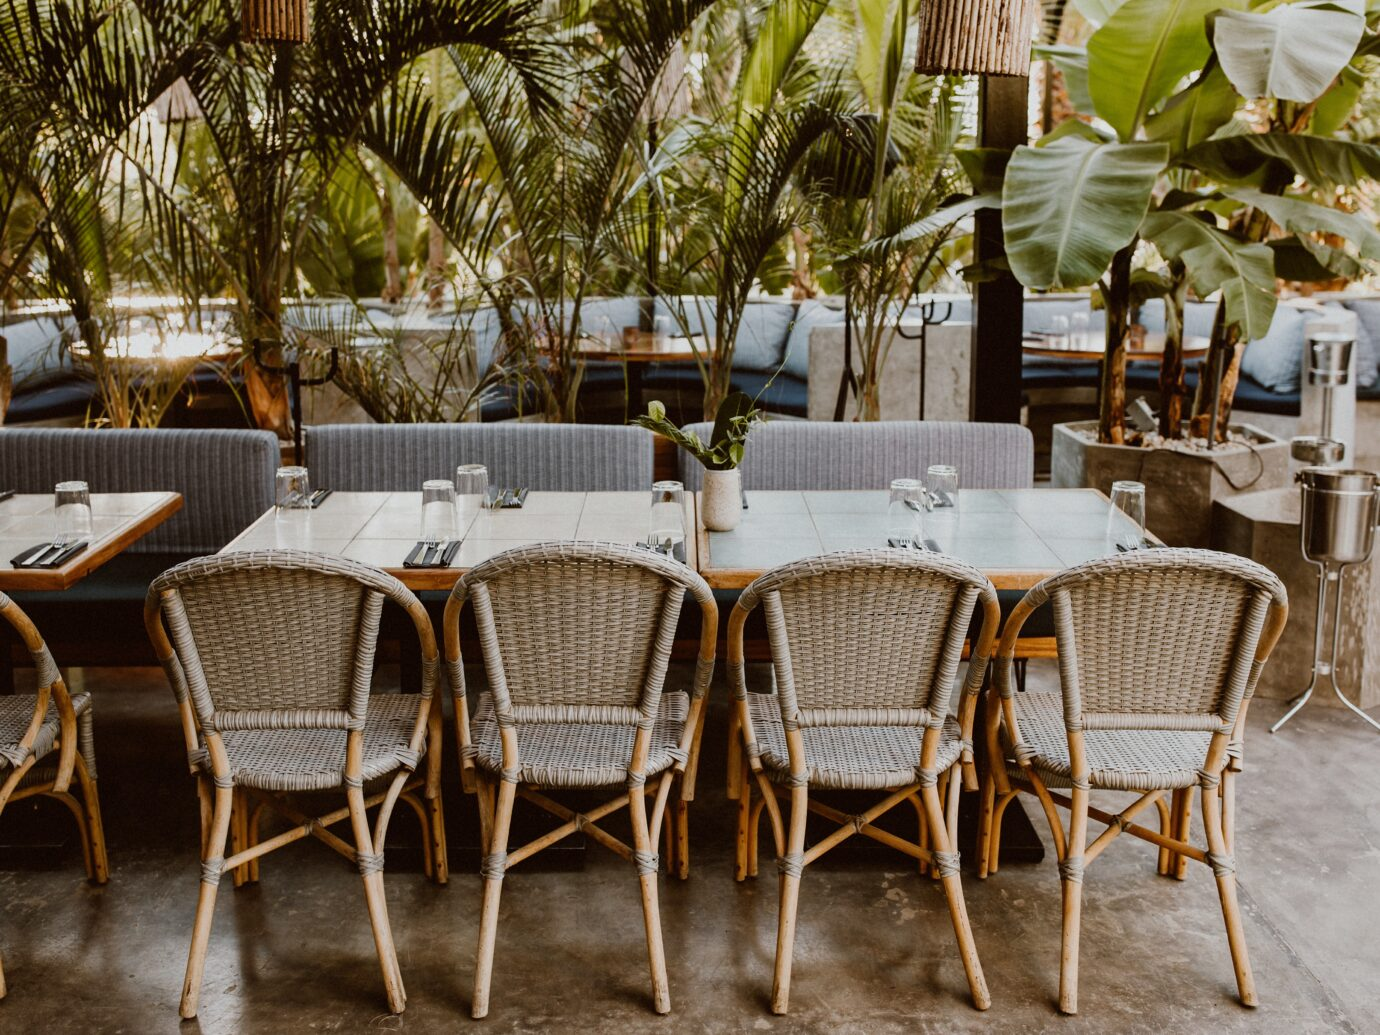 Outdoor dining at Acre in Baja California